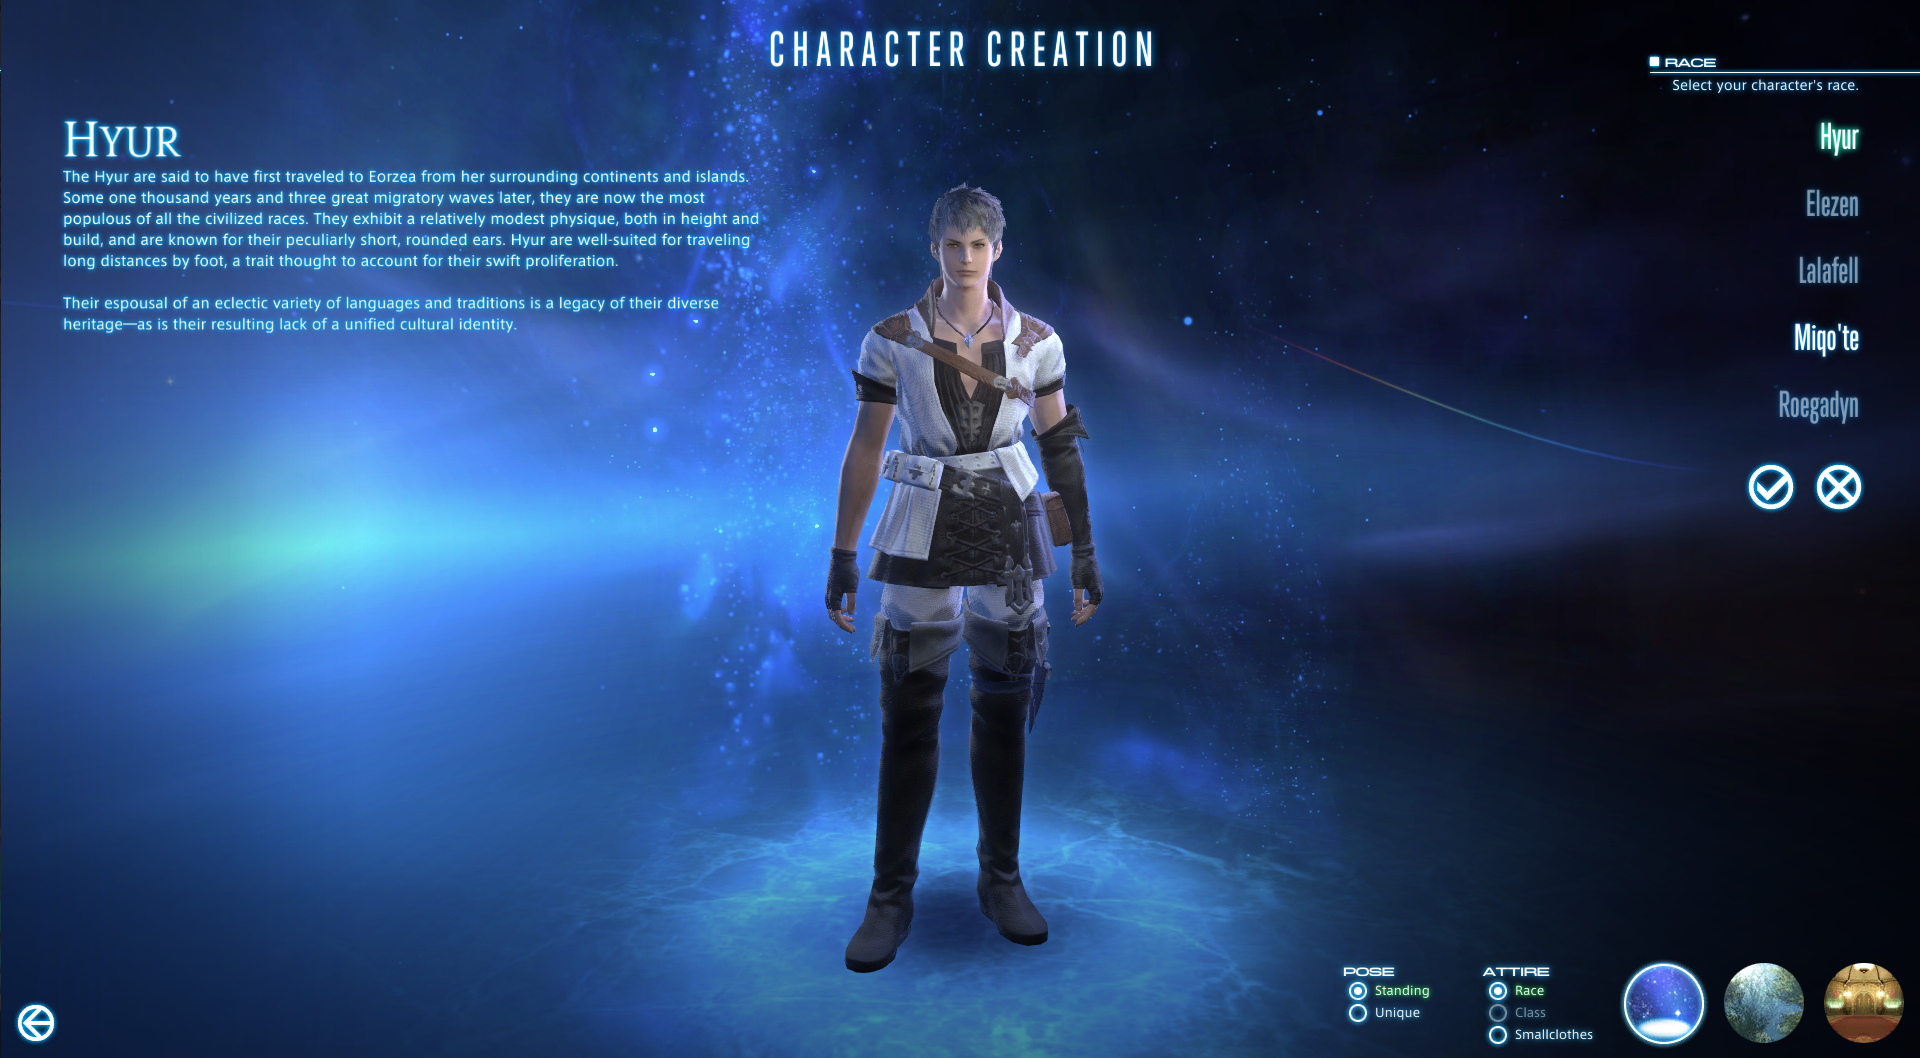 Final-Fantasy-XIV-Character-Customization